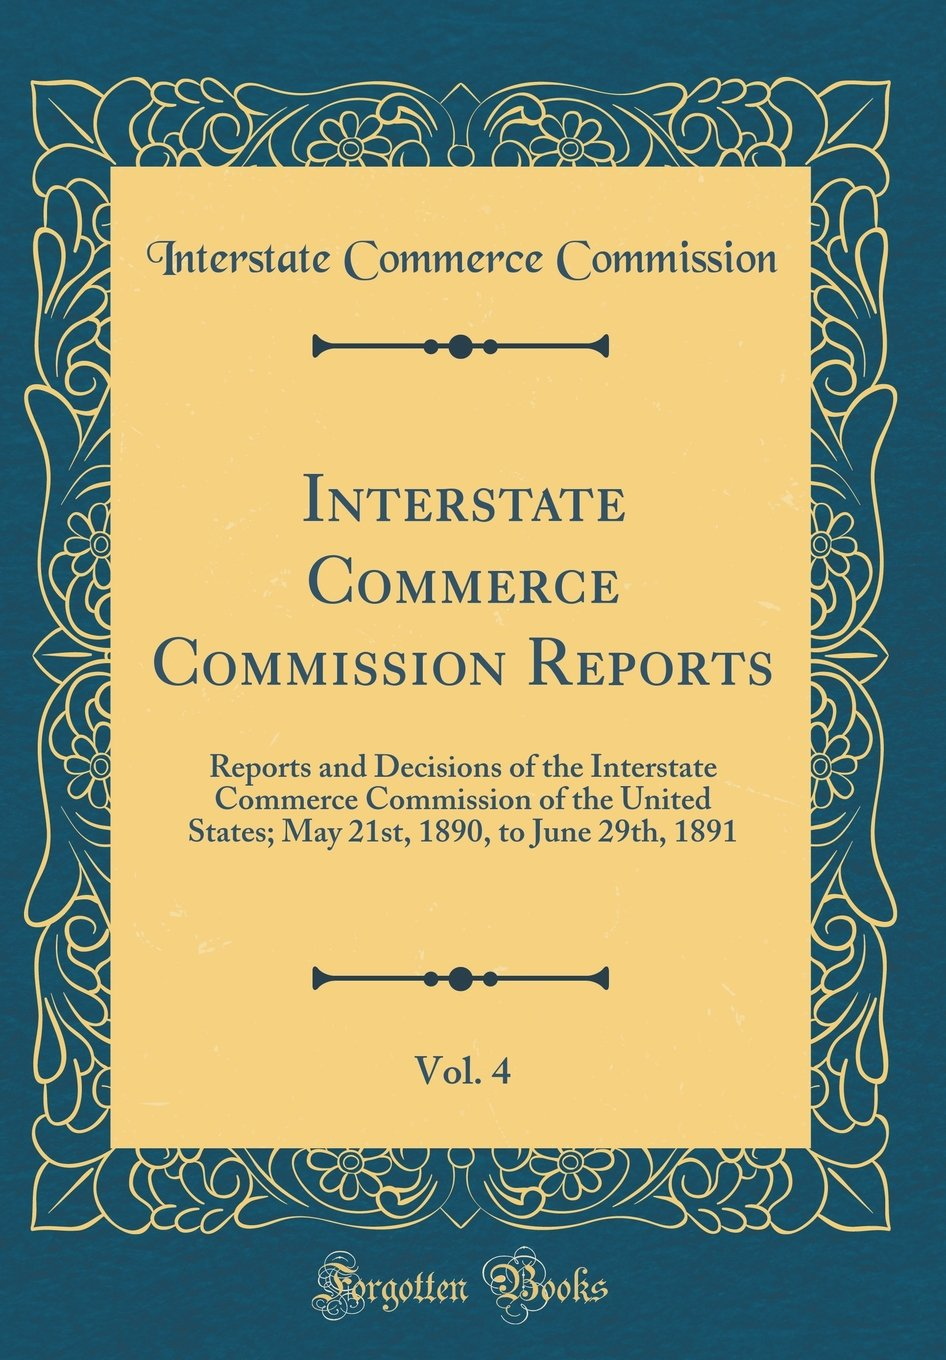 Interstate Commerce Commission Reports, Vol. 4: Reports and Decisions of the Interstate Commerce Commission of the United States; May 21st, 1890, to June 29th, 1891 (Classic Reprint) PDF